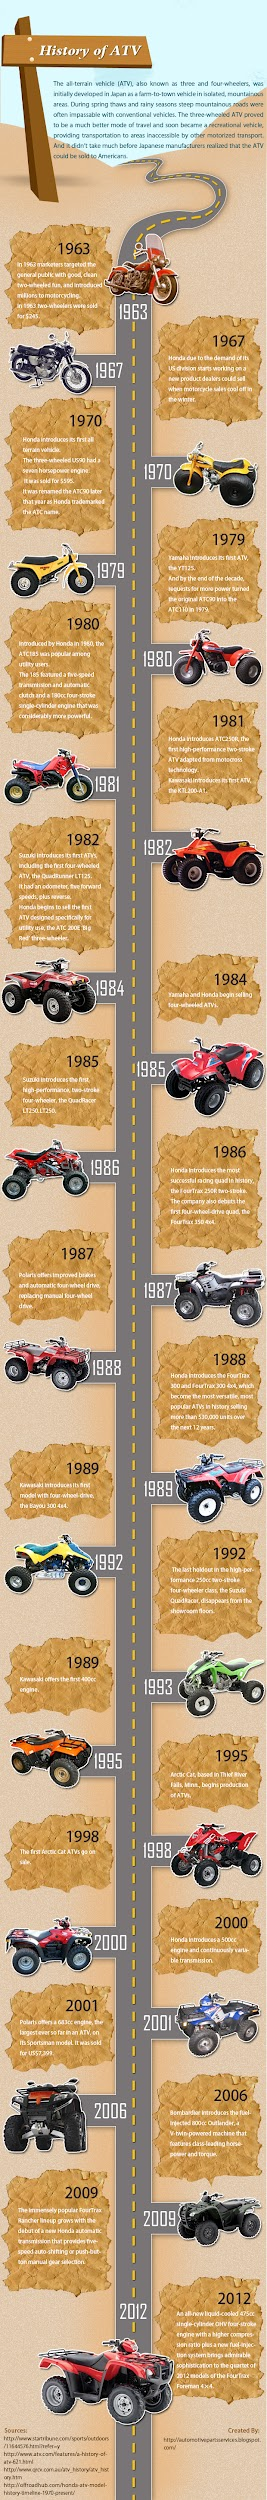 I thought this was pretty cool! | Riding ATVs | Atv